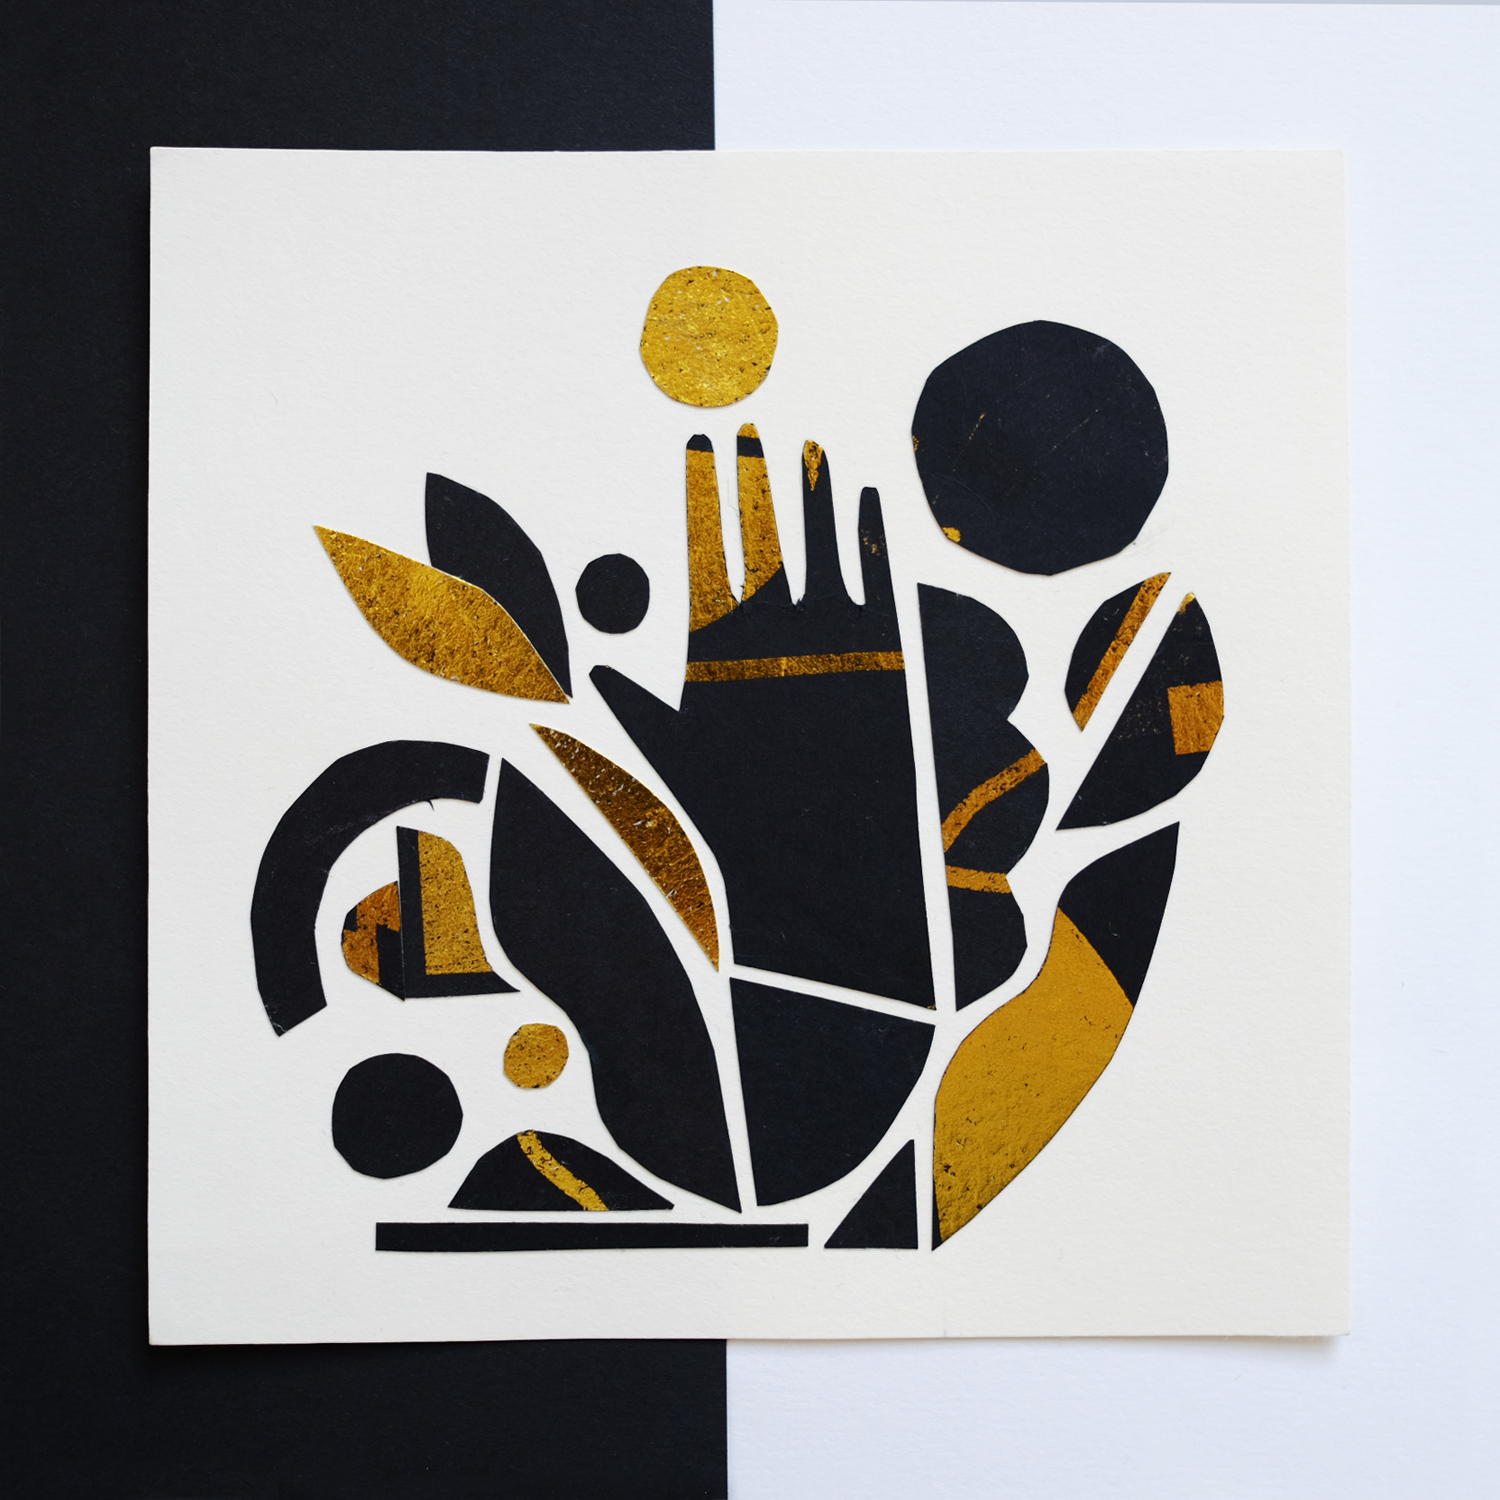 Gold and black paper collage created by Monsie Monika Jurczyk illustration